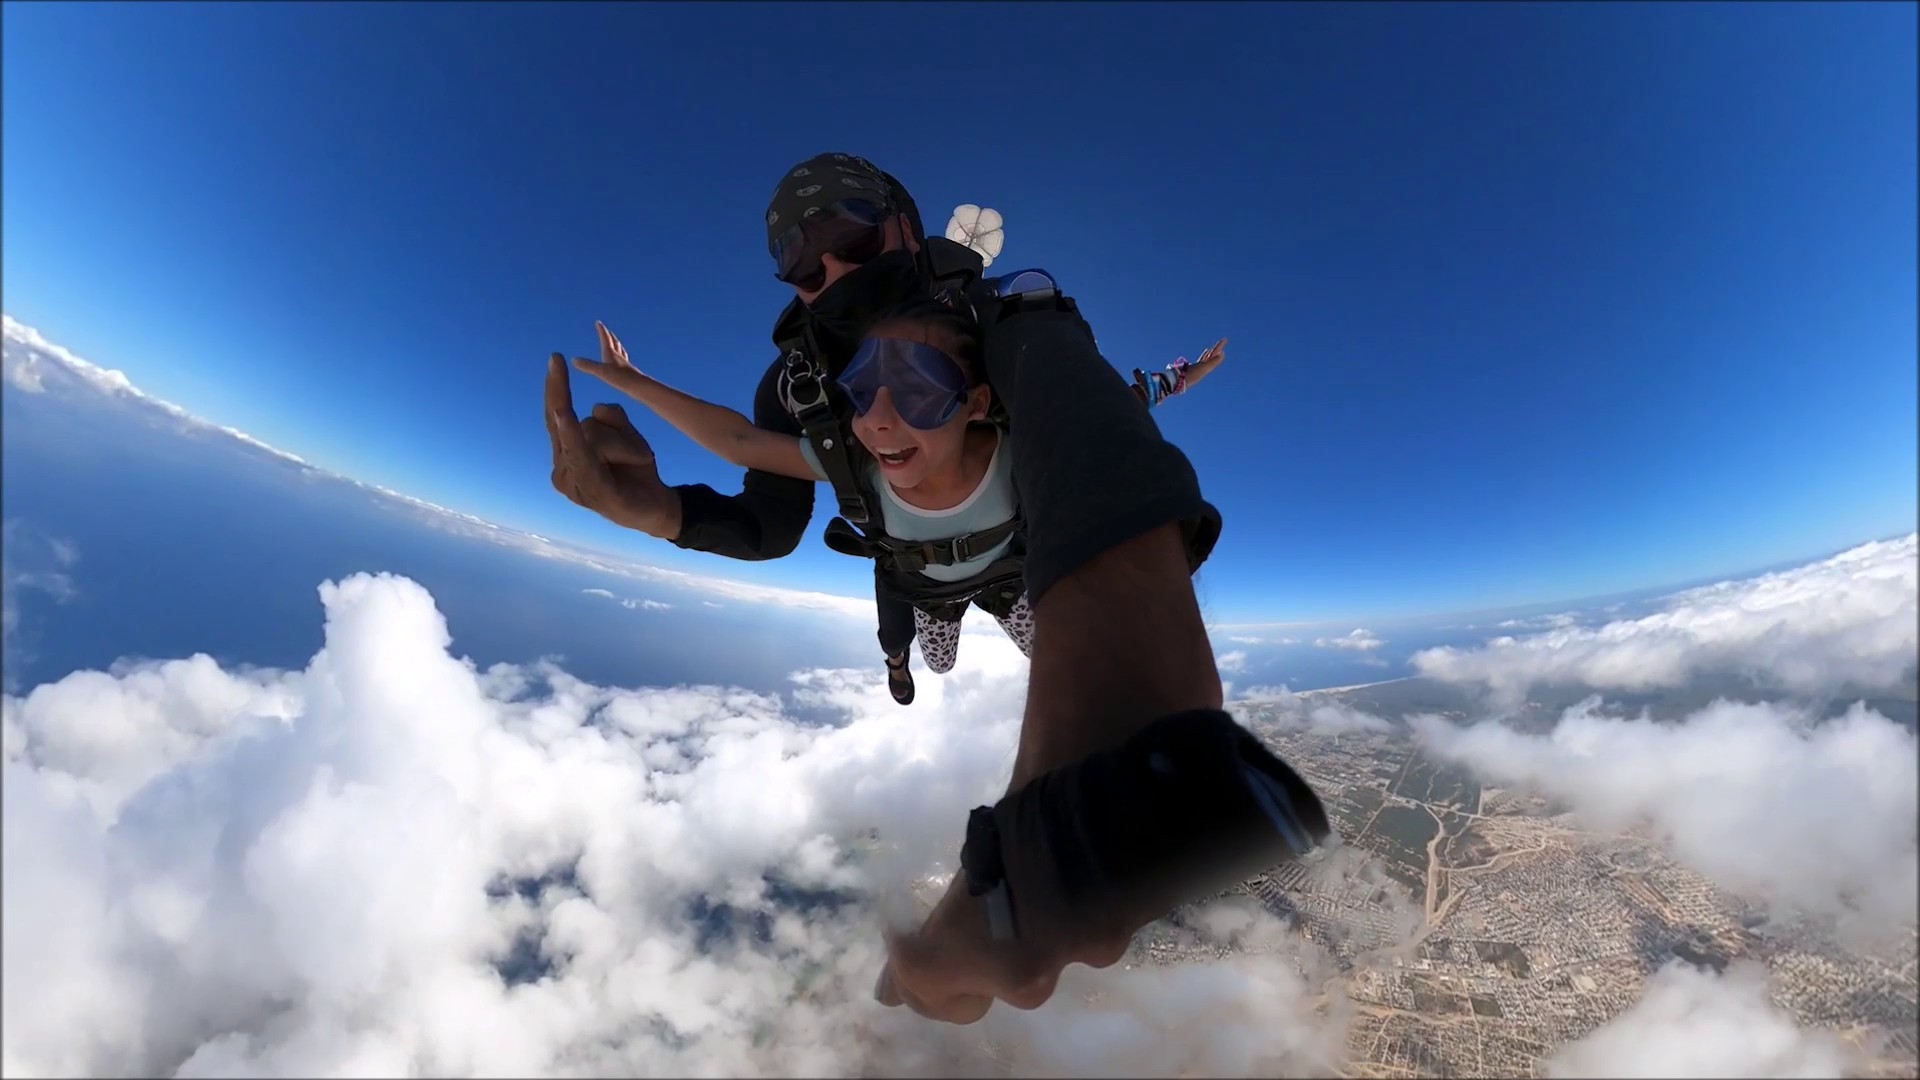 Cabo Skydive - JUMP IT:hailey123